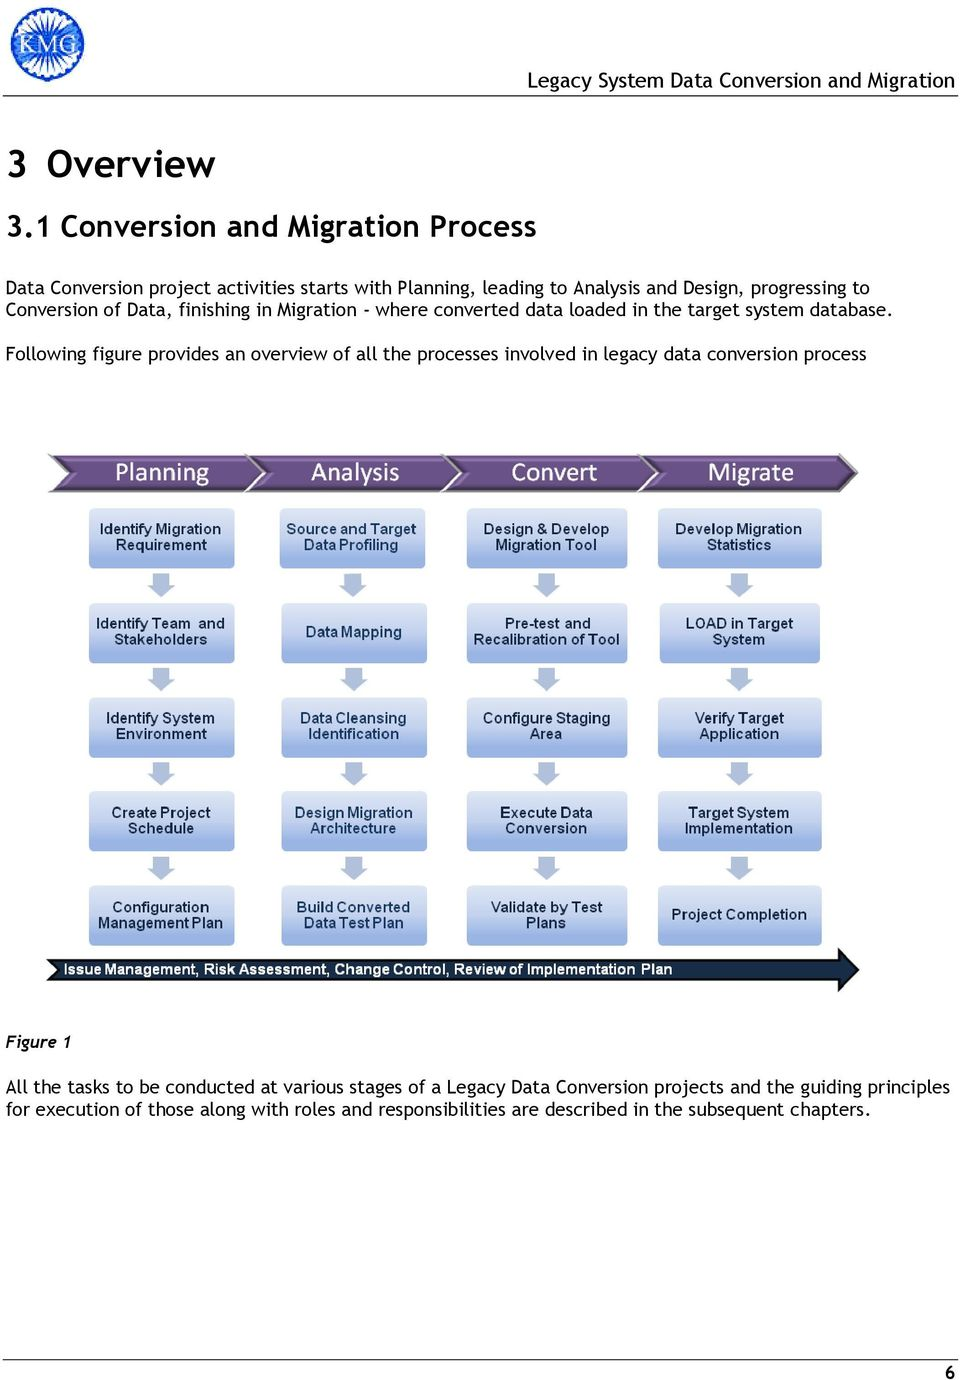 Legacy System Data Conversion And Migration - PDF